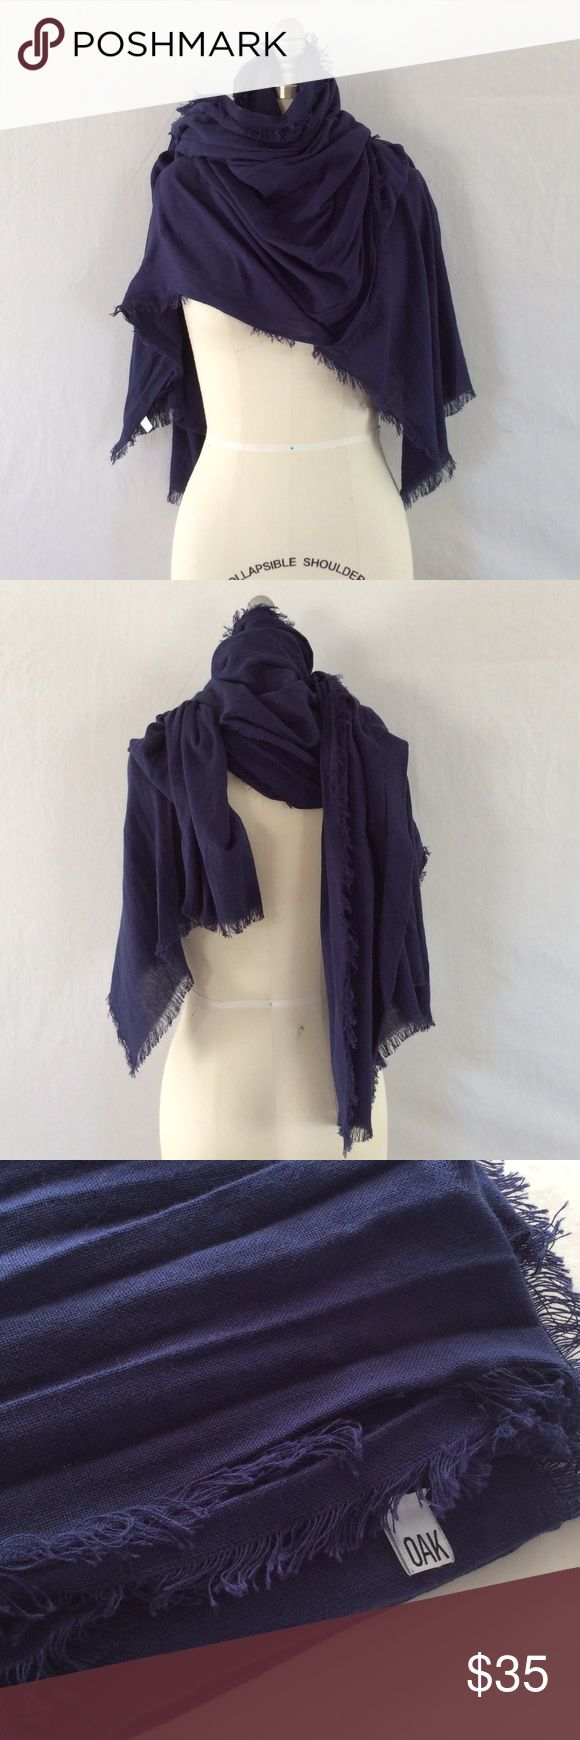 "Giant Blanket Scarf! This giant blanket scarf from Oak NYC is 40""x80"" providing all the coziness you need this winter! A beautiful deep navy color, this scarf was originally $100! Accessories Scarves & Wraps"